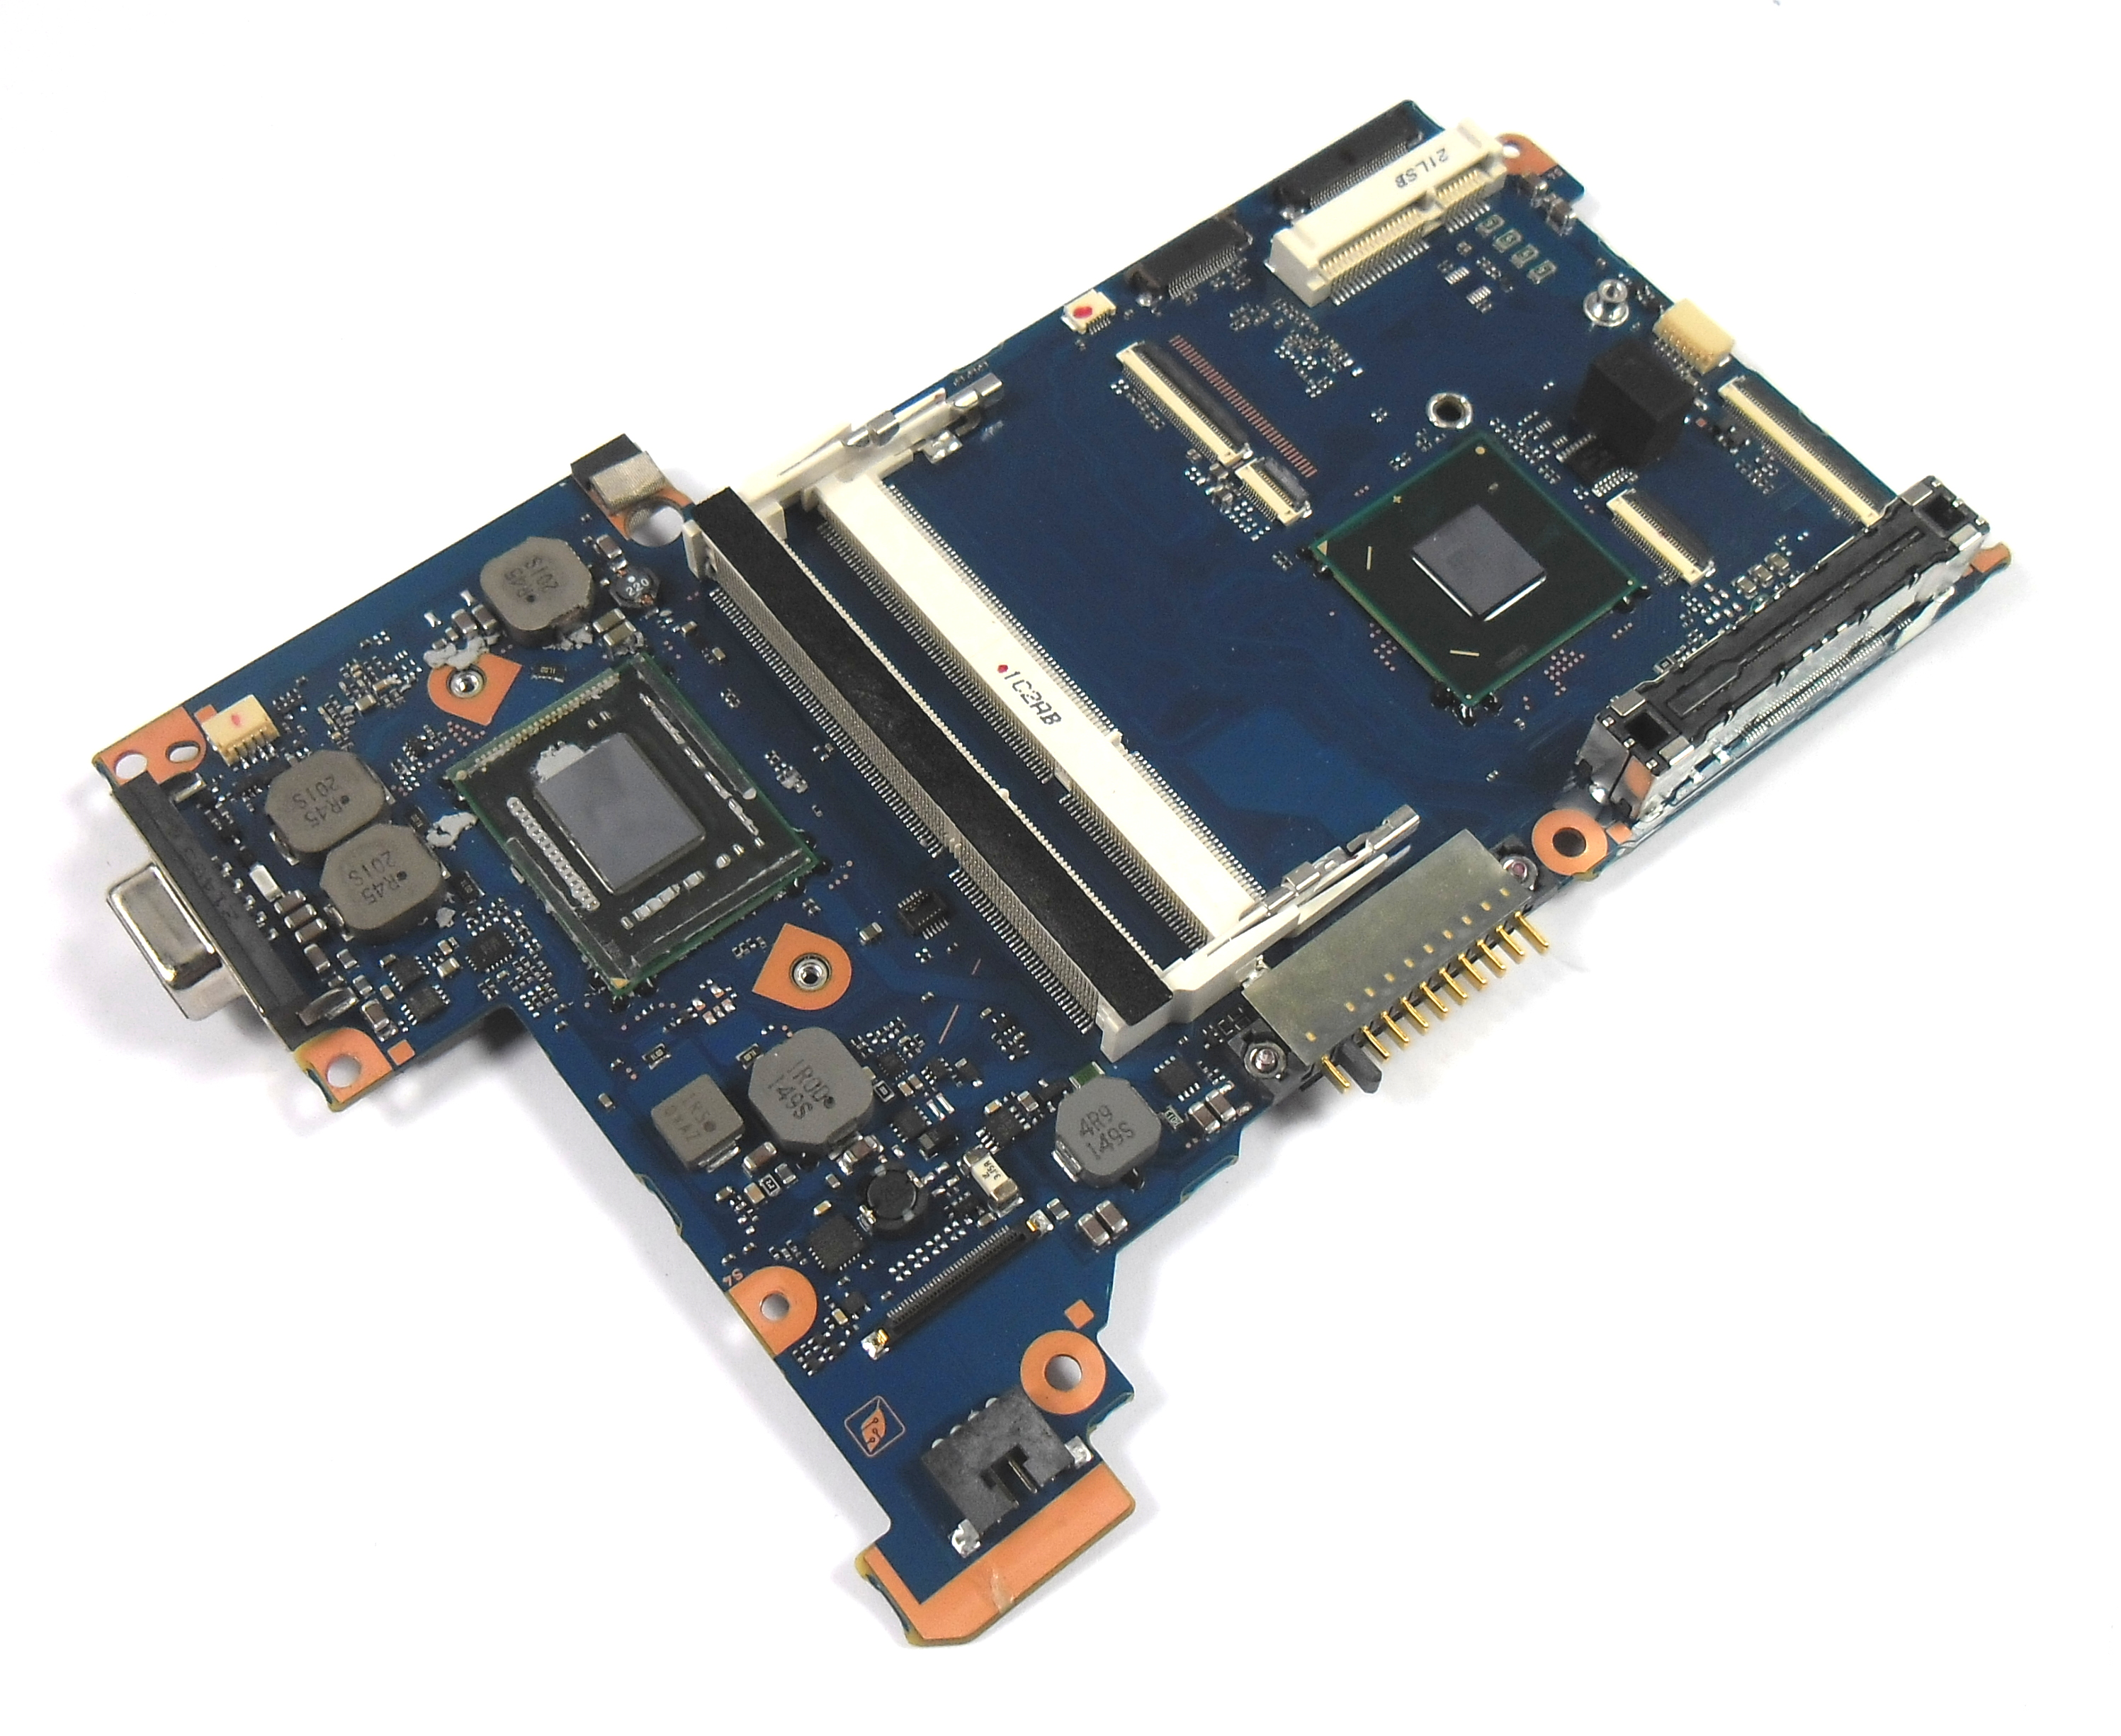 Toshiba FAL3SY3 Portege R830 Laptop Motherboard with Intel i5-2520M Processor